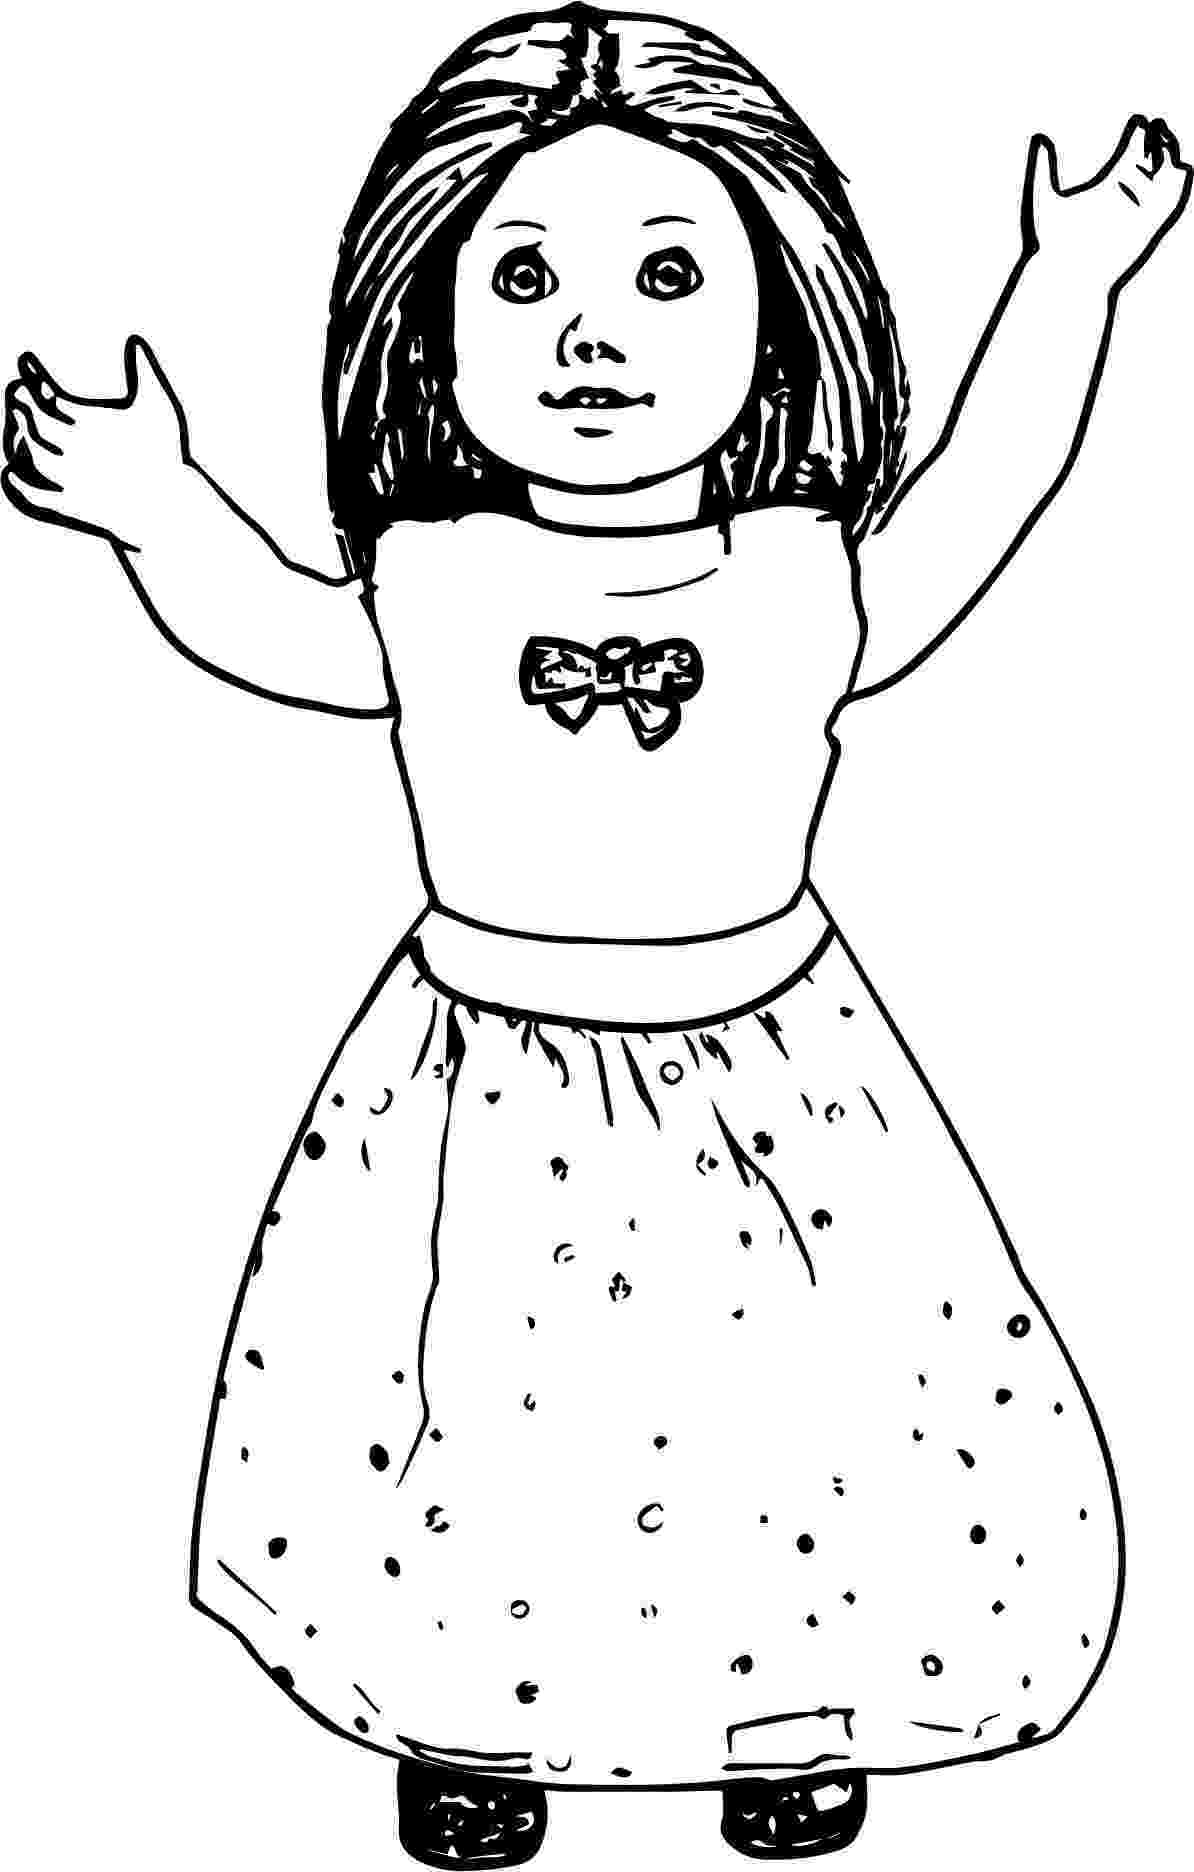 girl colering pages my american girl coloring pages small dolls in a big world pages colering girl